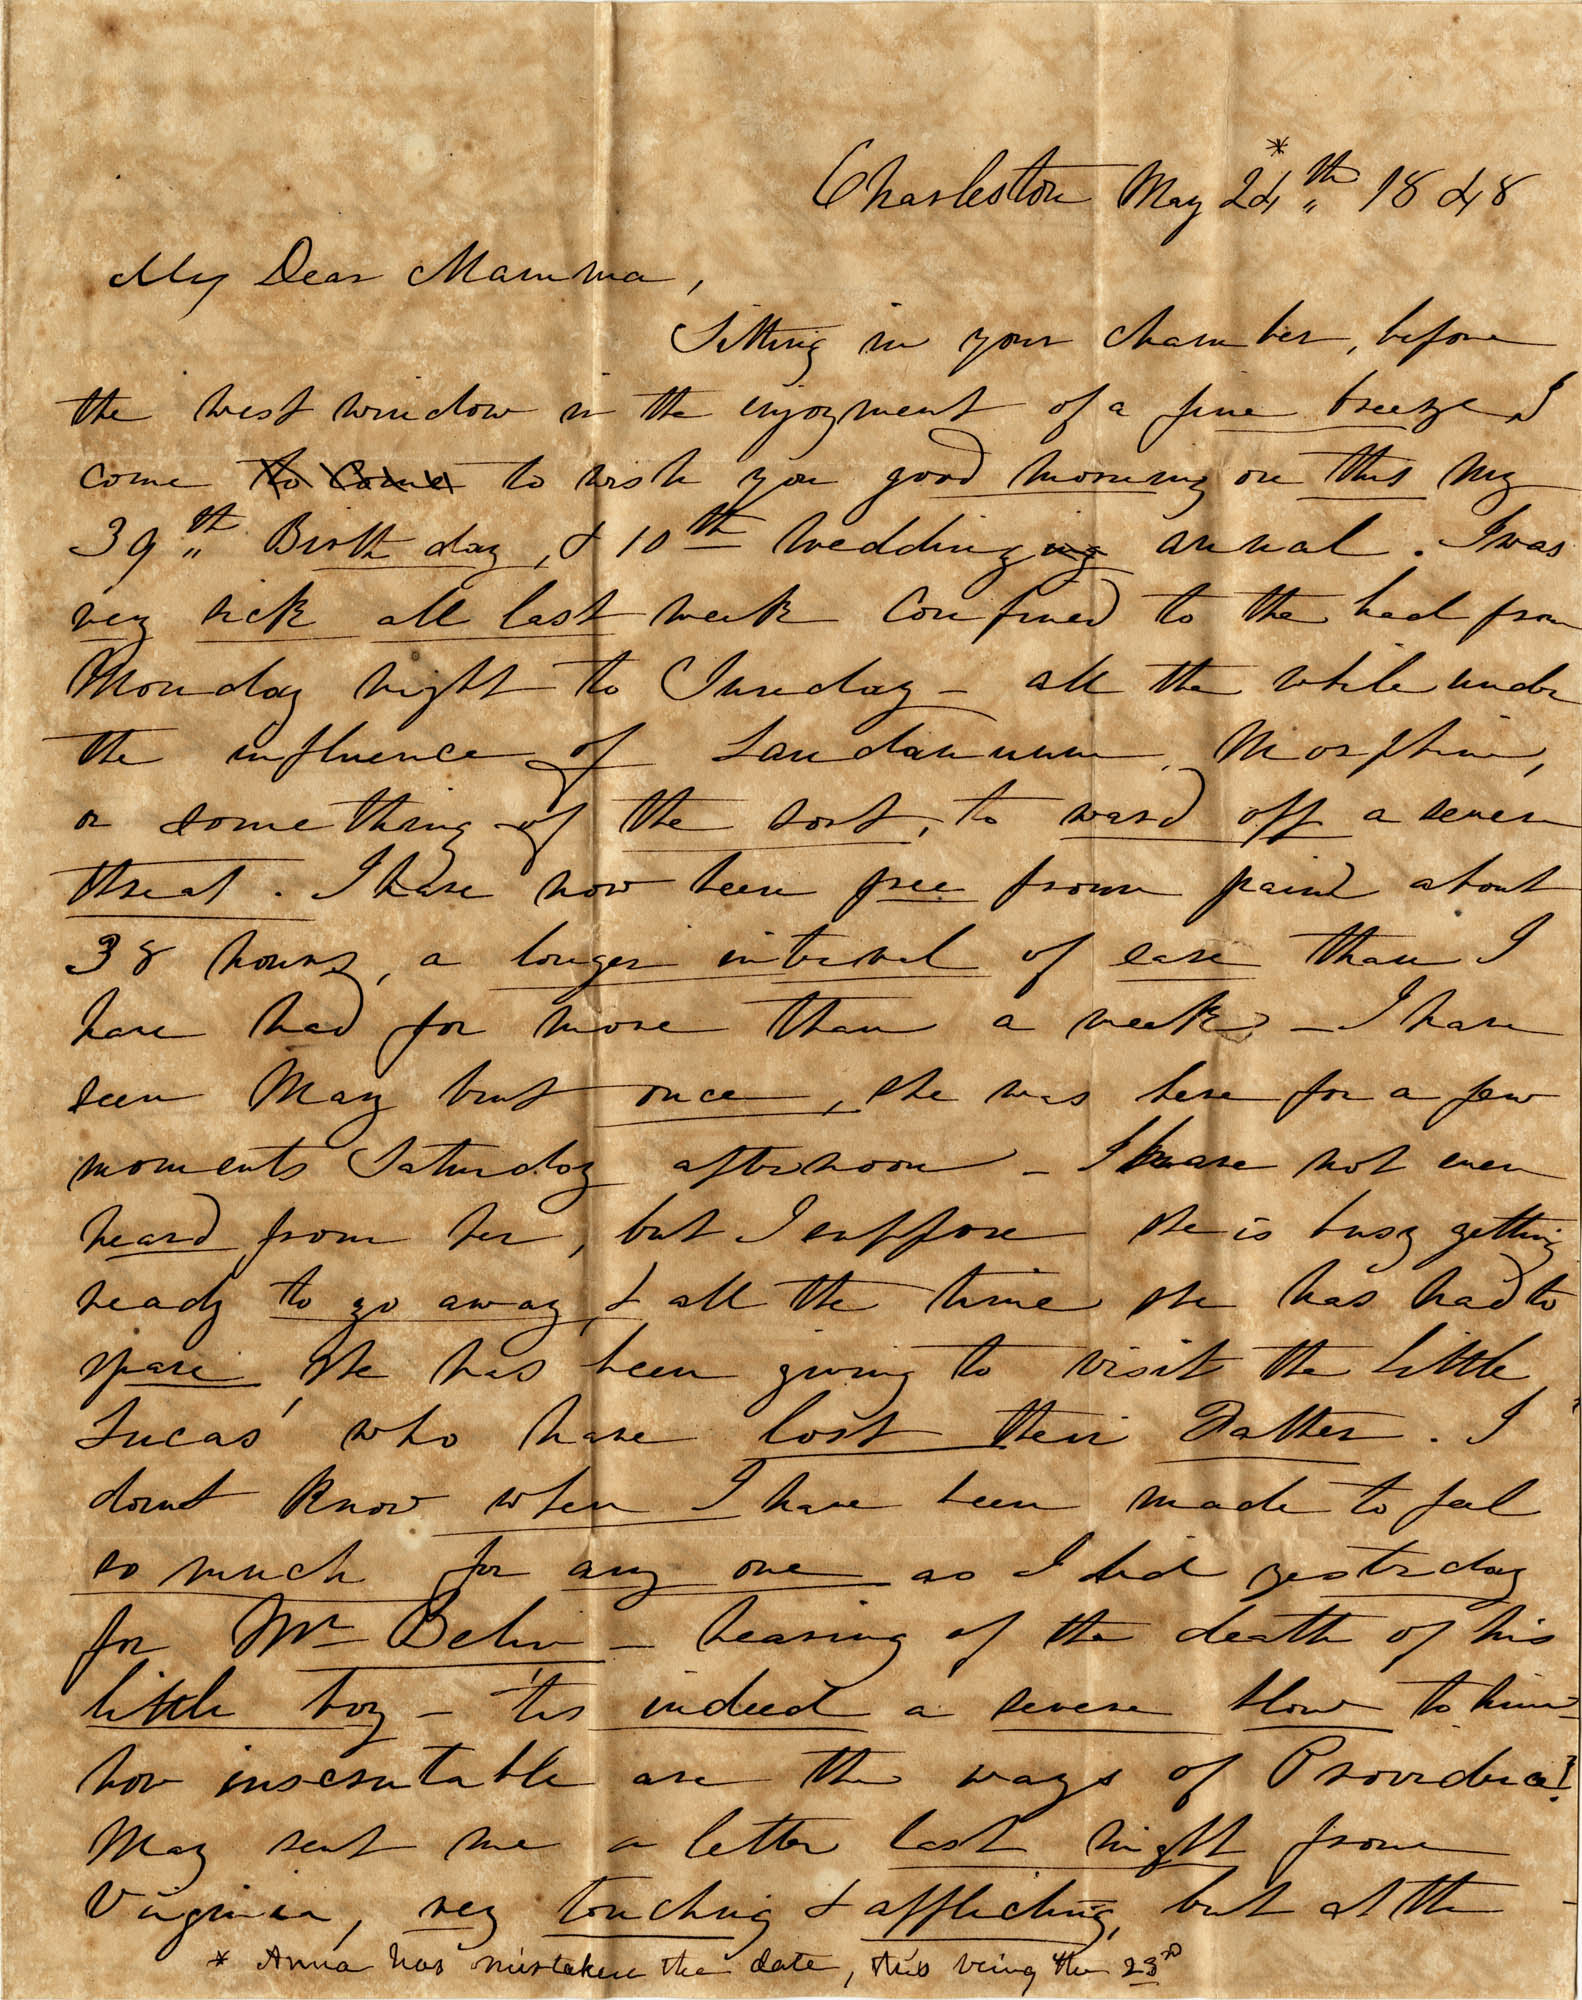 032. Anna Wilkinson to Eleanora Wilkinson -- May 23, 1828